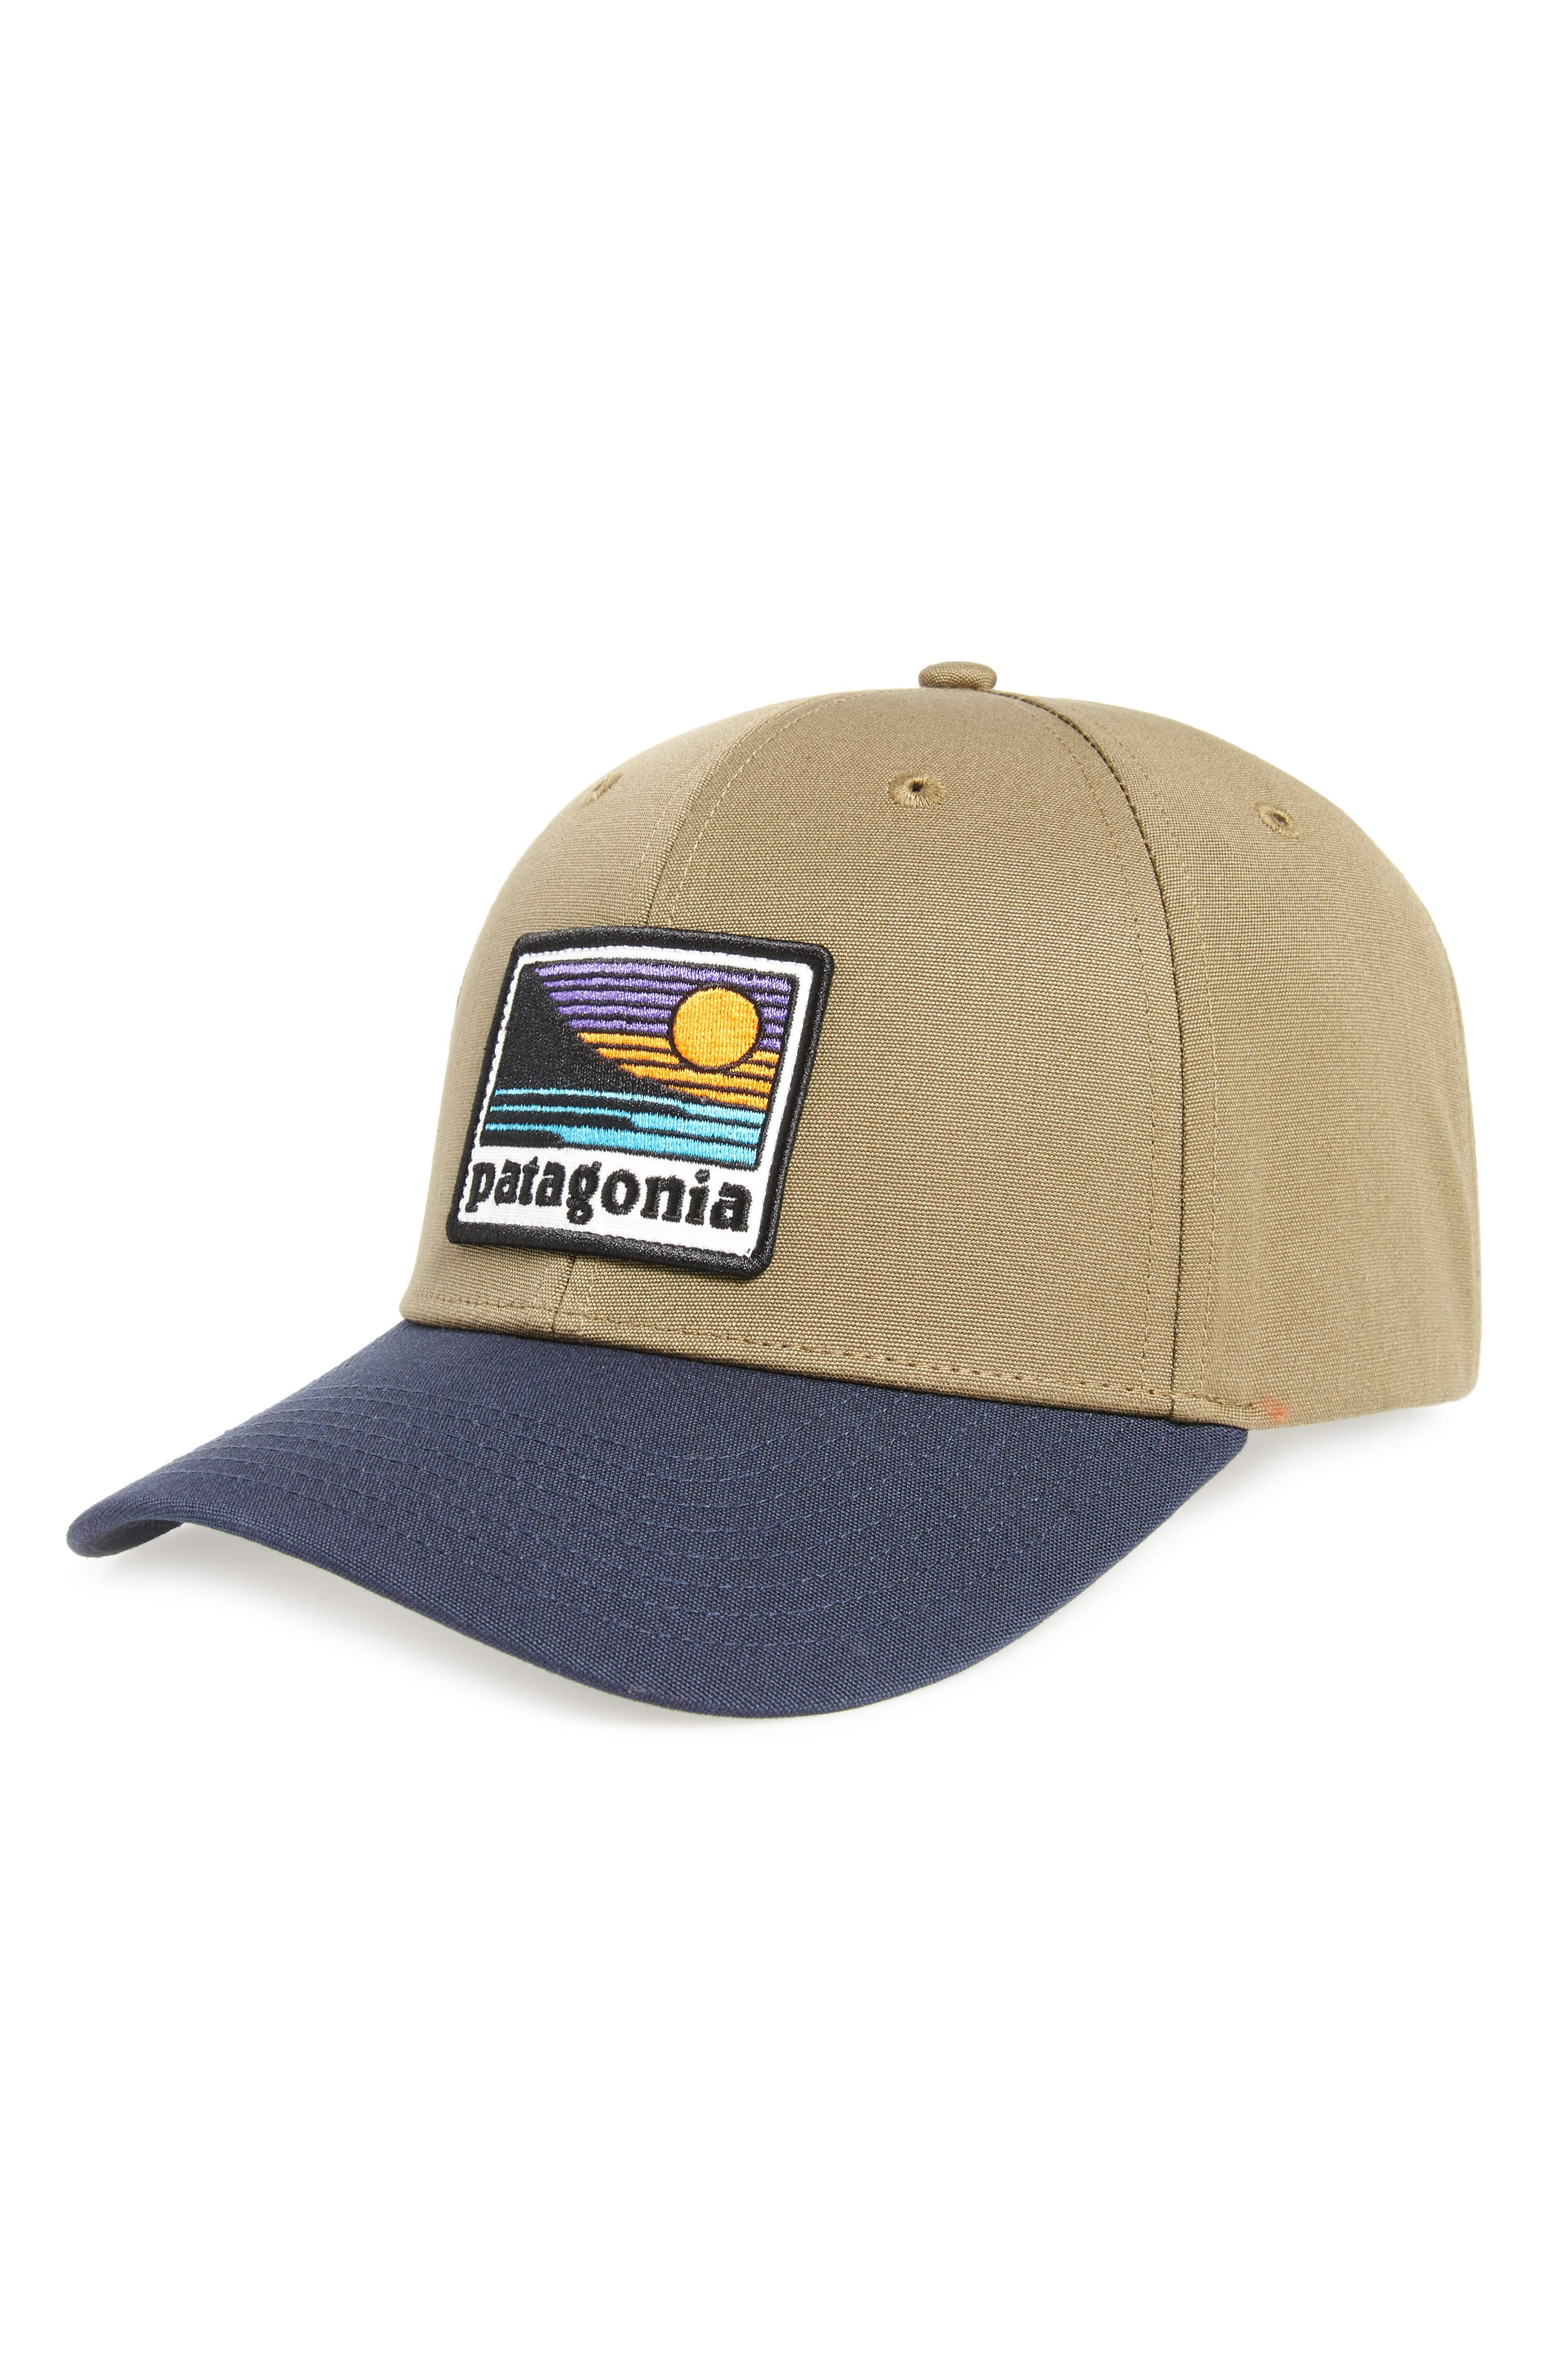 Alternate Image 1 Selected - Patagonia Up & Out Roger That Trucker Cap